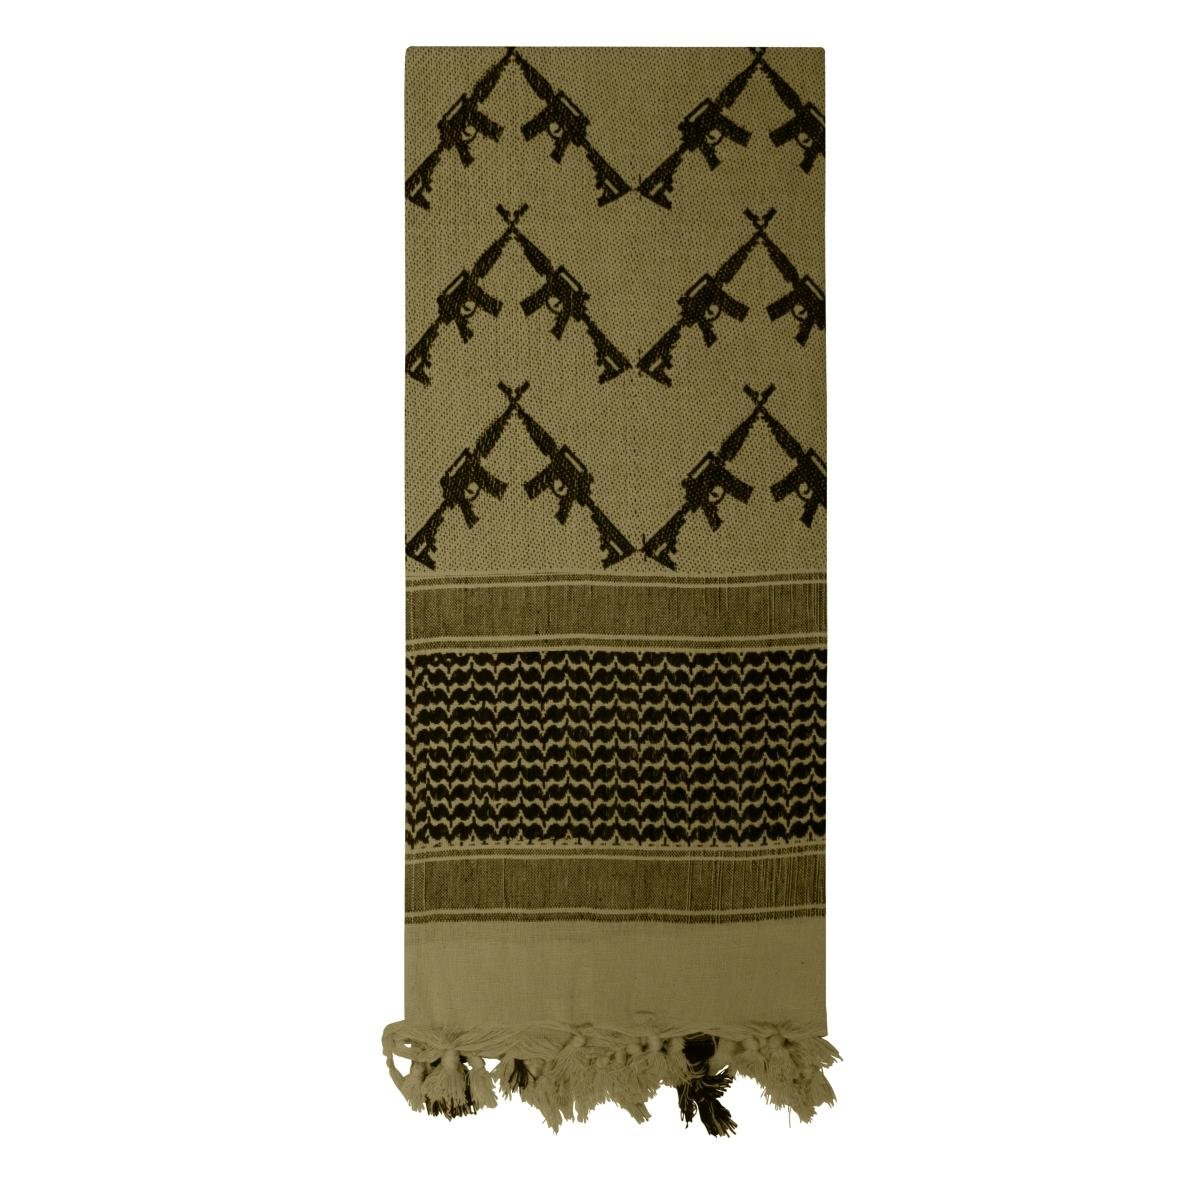 Rothco Crossed Rifles Shemagh Tactical Scarf, Olive Drab